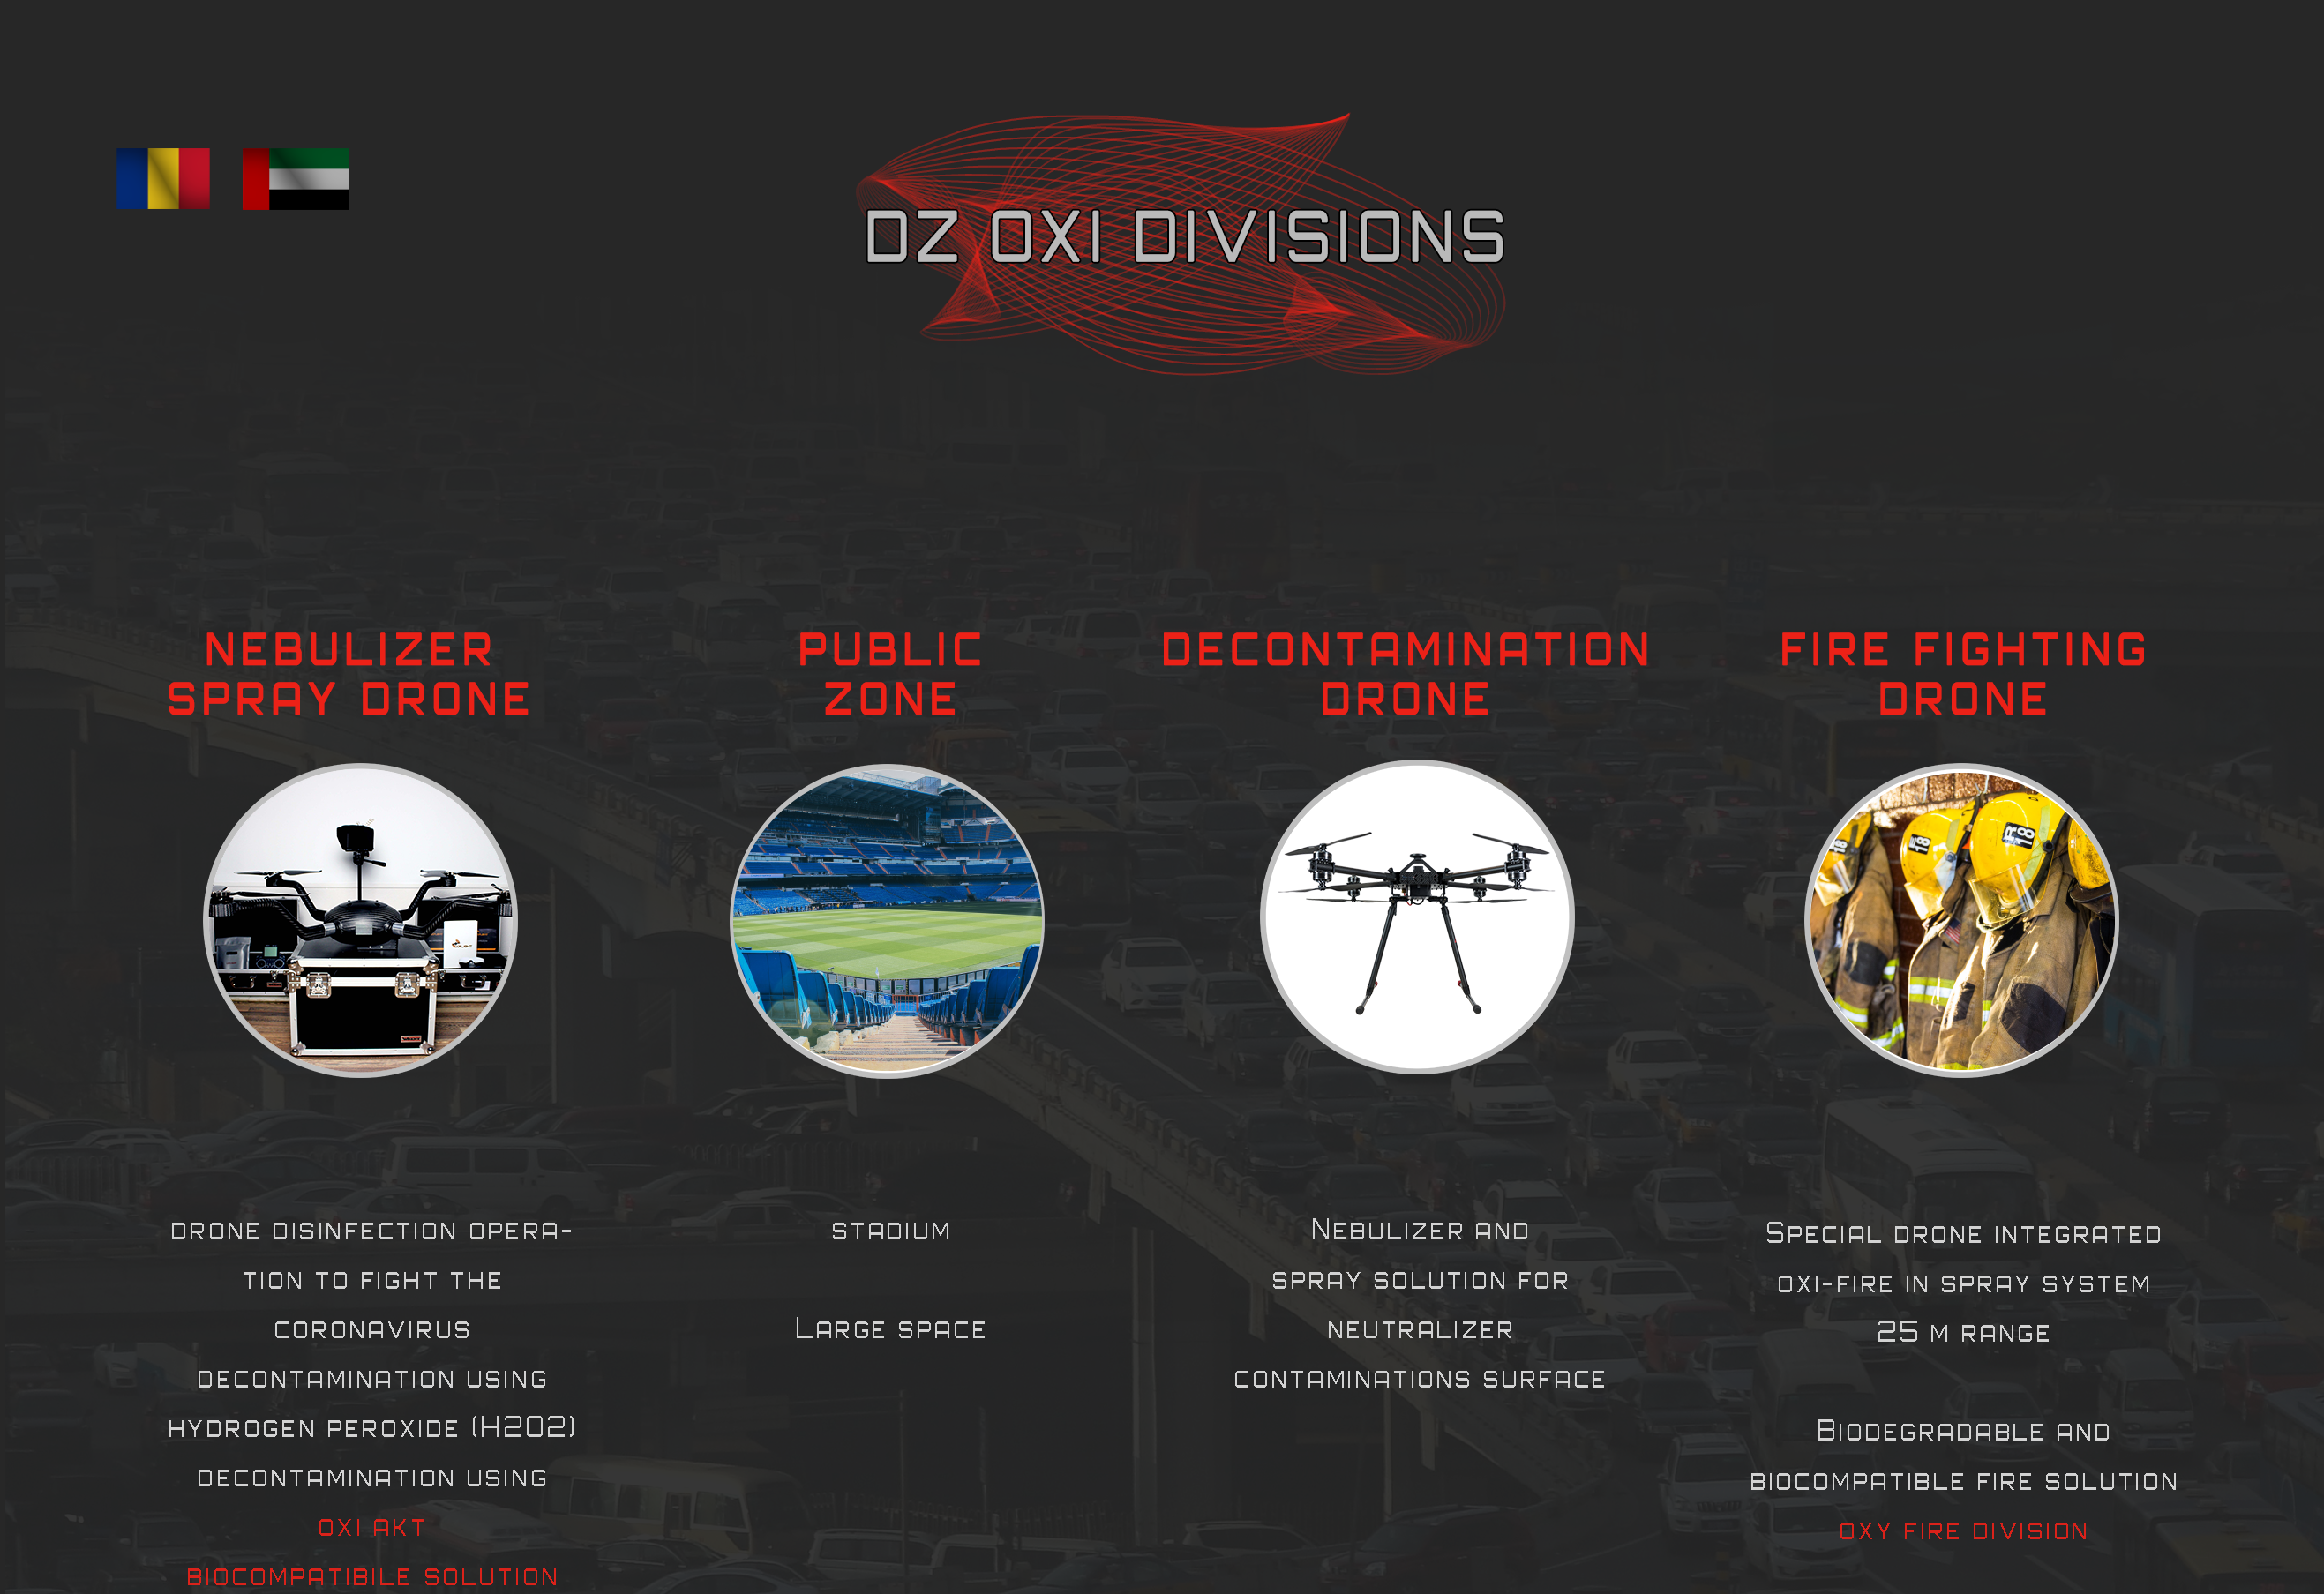 https://www.dronezone.ro/wp-content/uploads/2021/02/pag3.png